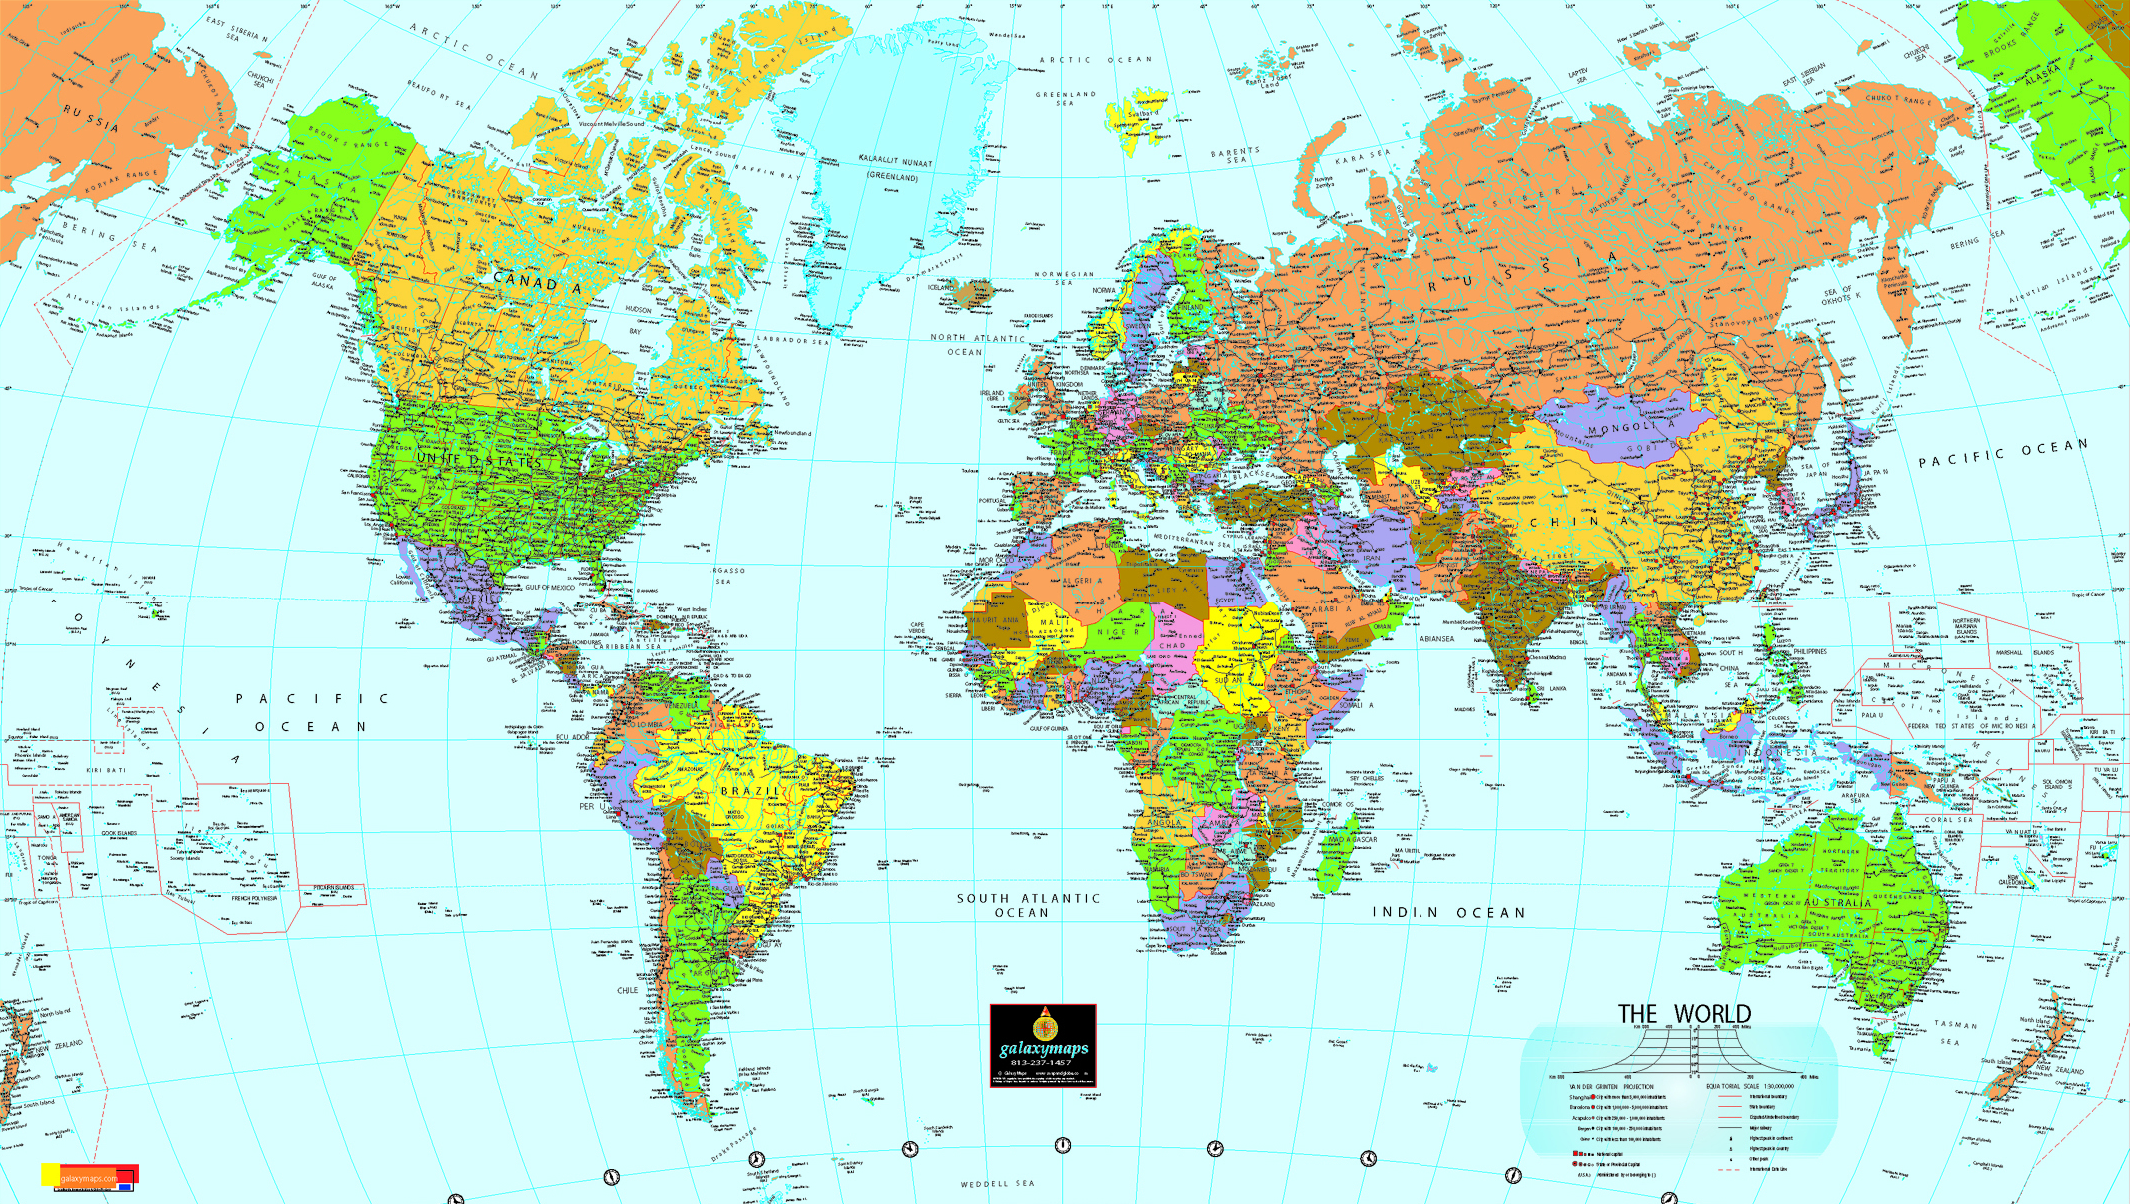 World+map+with+latitude+and+longitude+and+major+cities